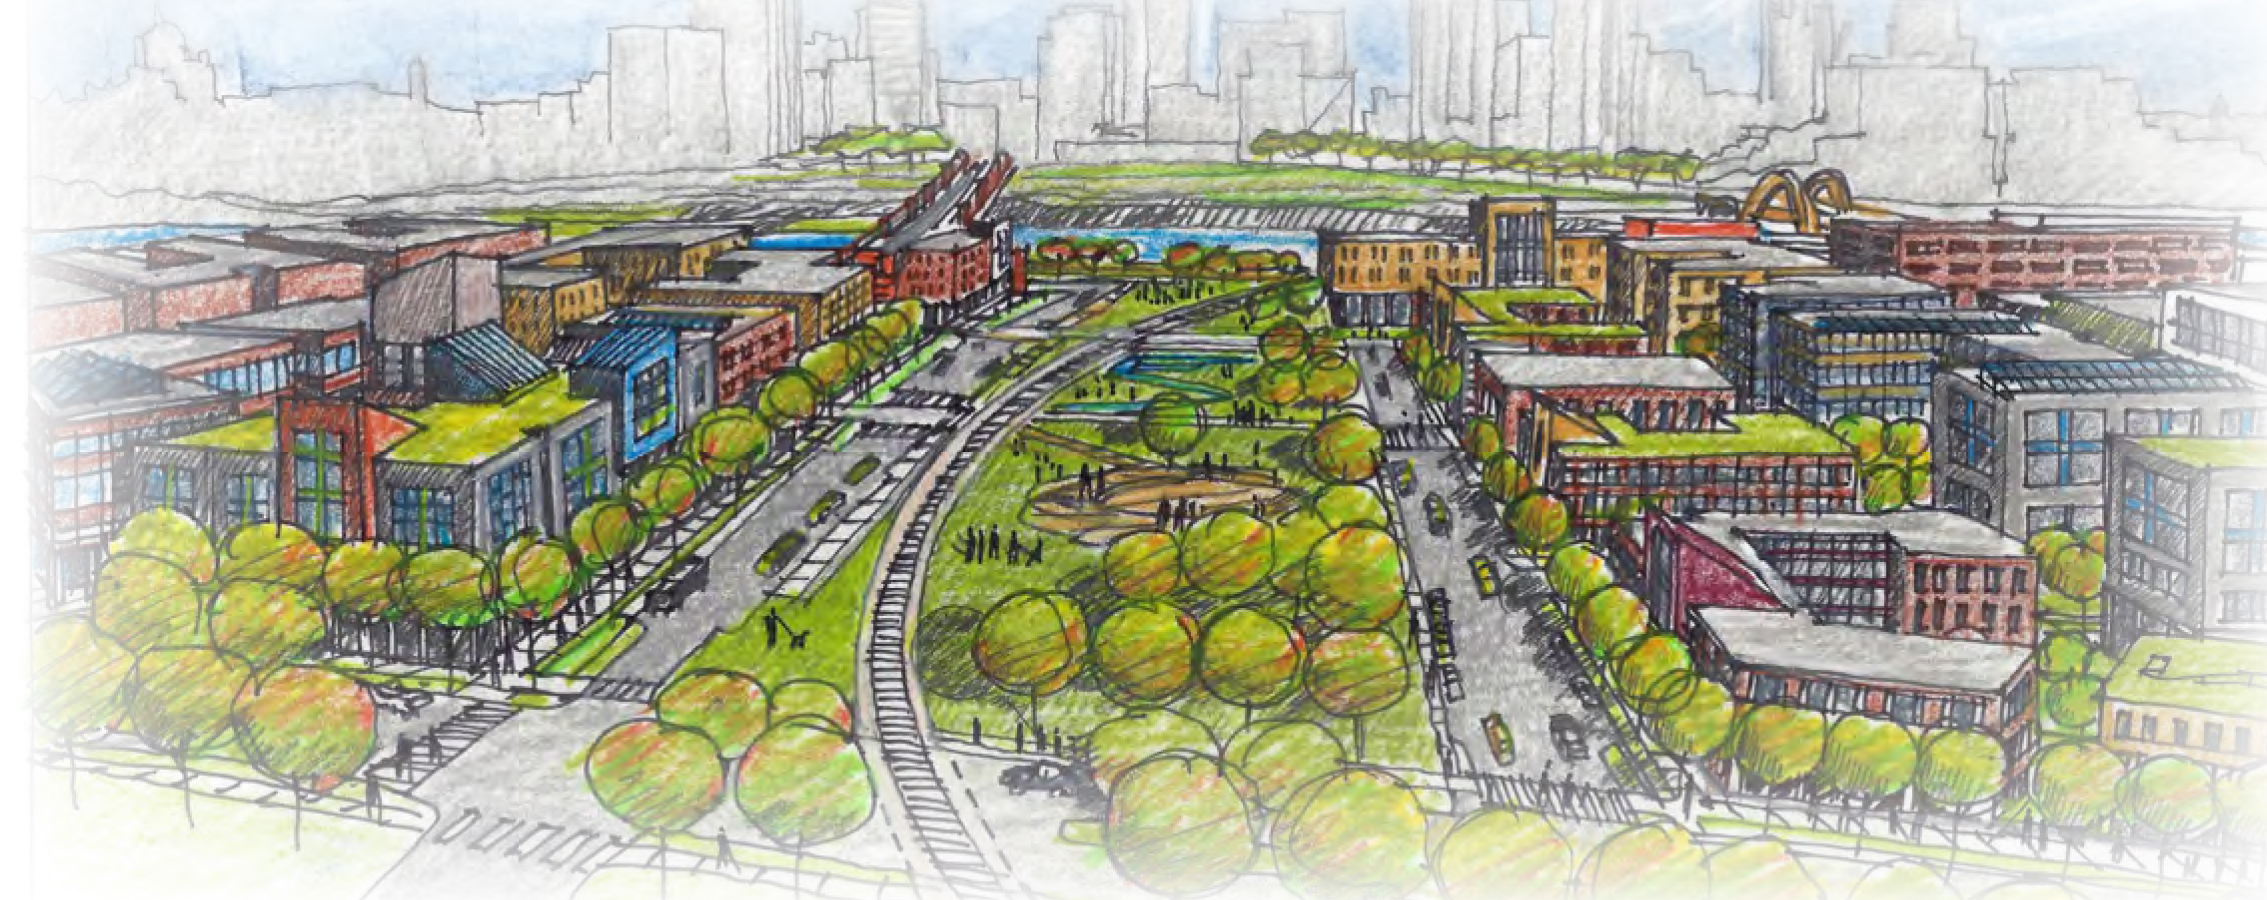 West Side Flats greenway rendering